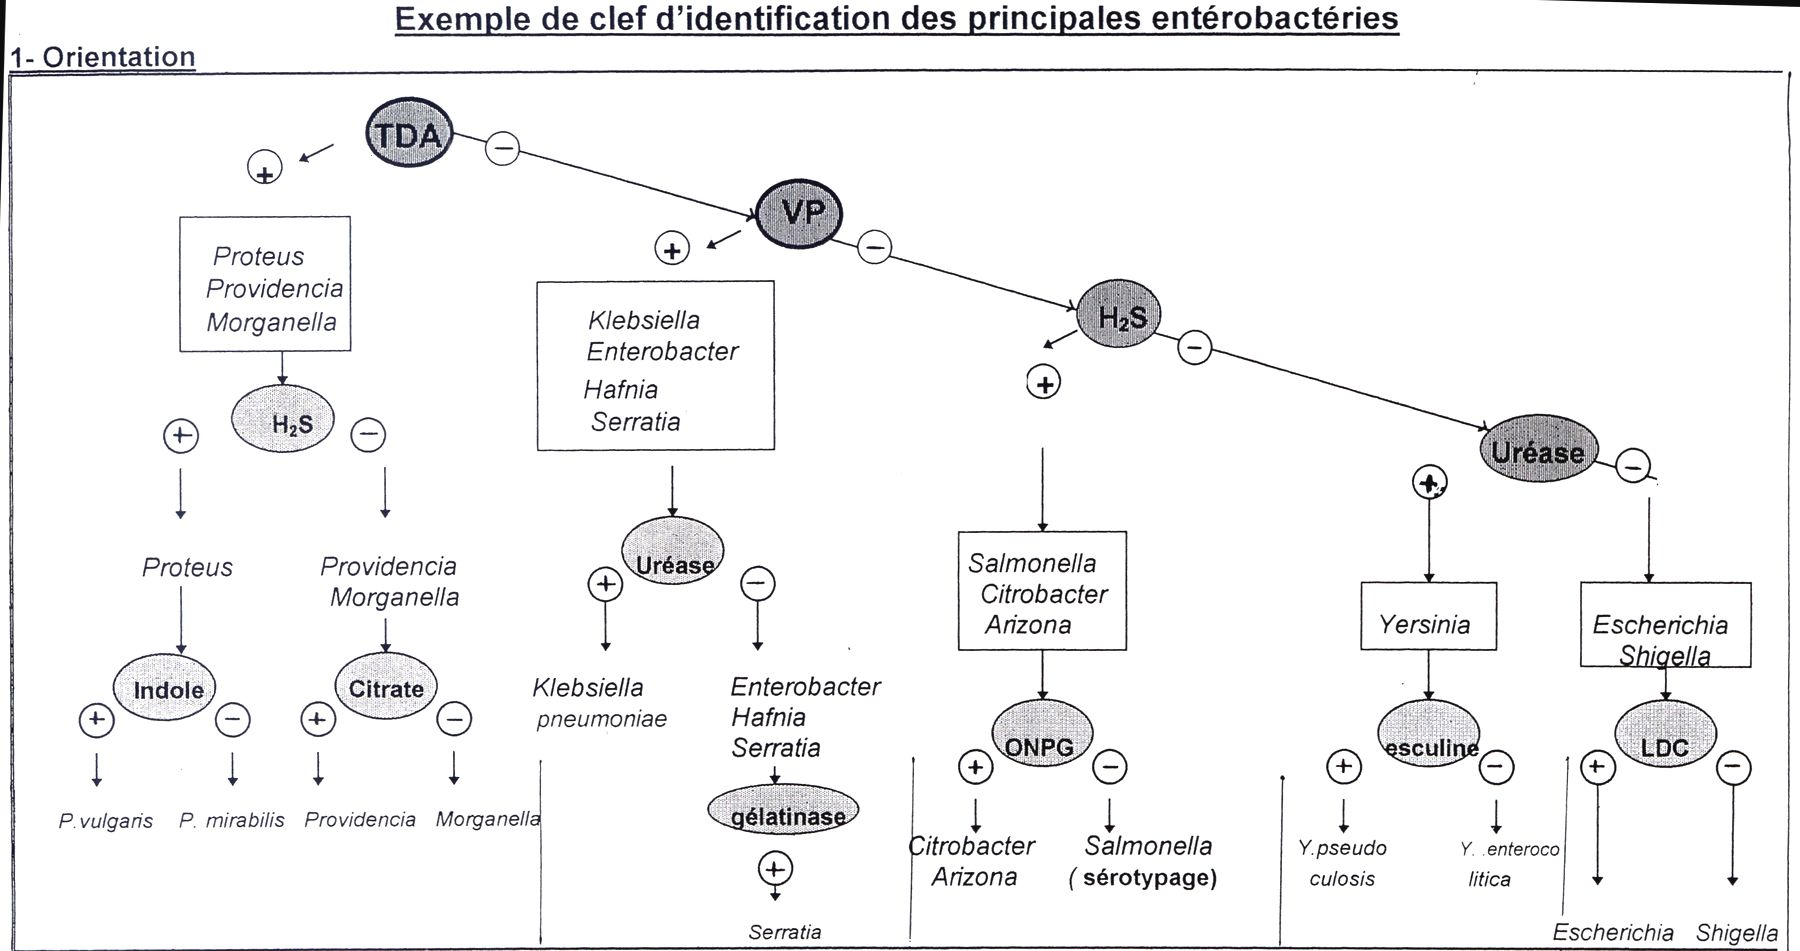 Identification enterobacterie 4b